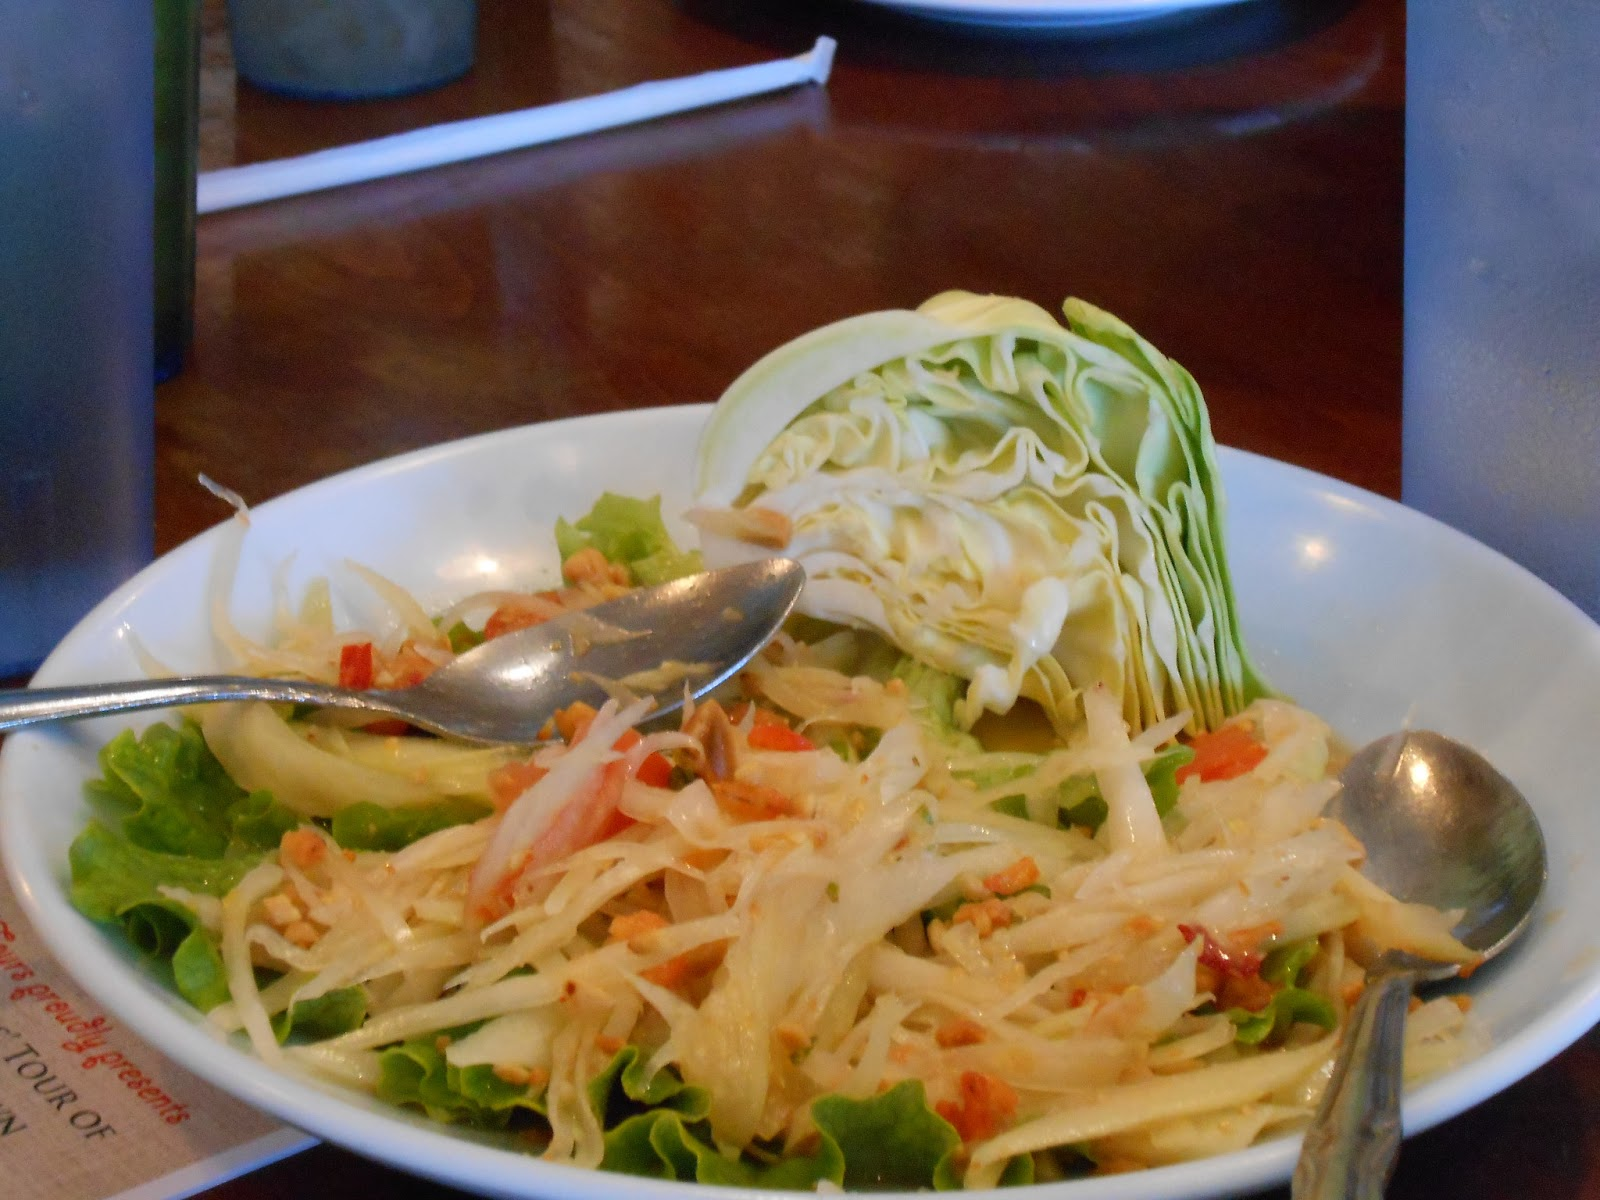 What's on Karen's Blog? - Karen's Blog - Thai Town - Melting Pot Tour - Som Tum - Papaya Salad - Ruen Pair